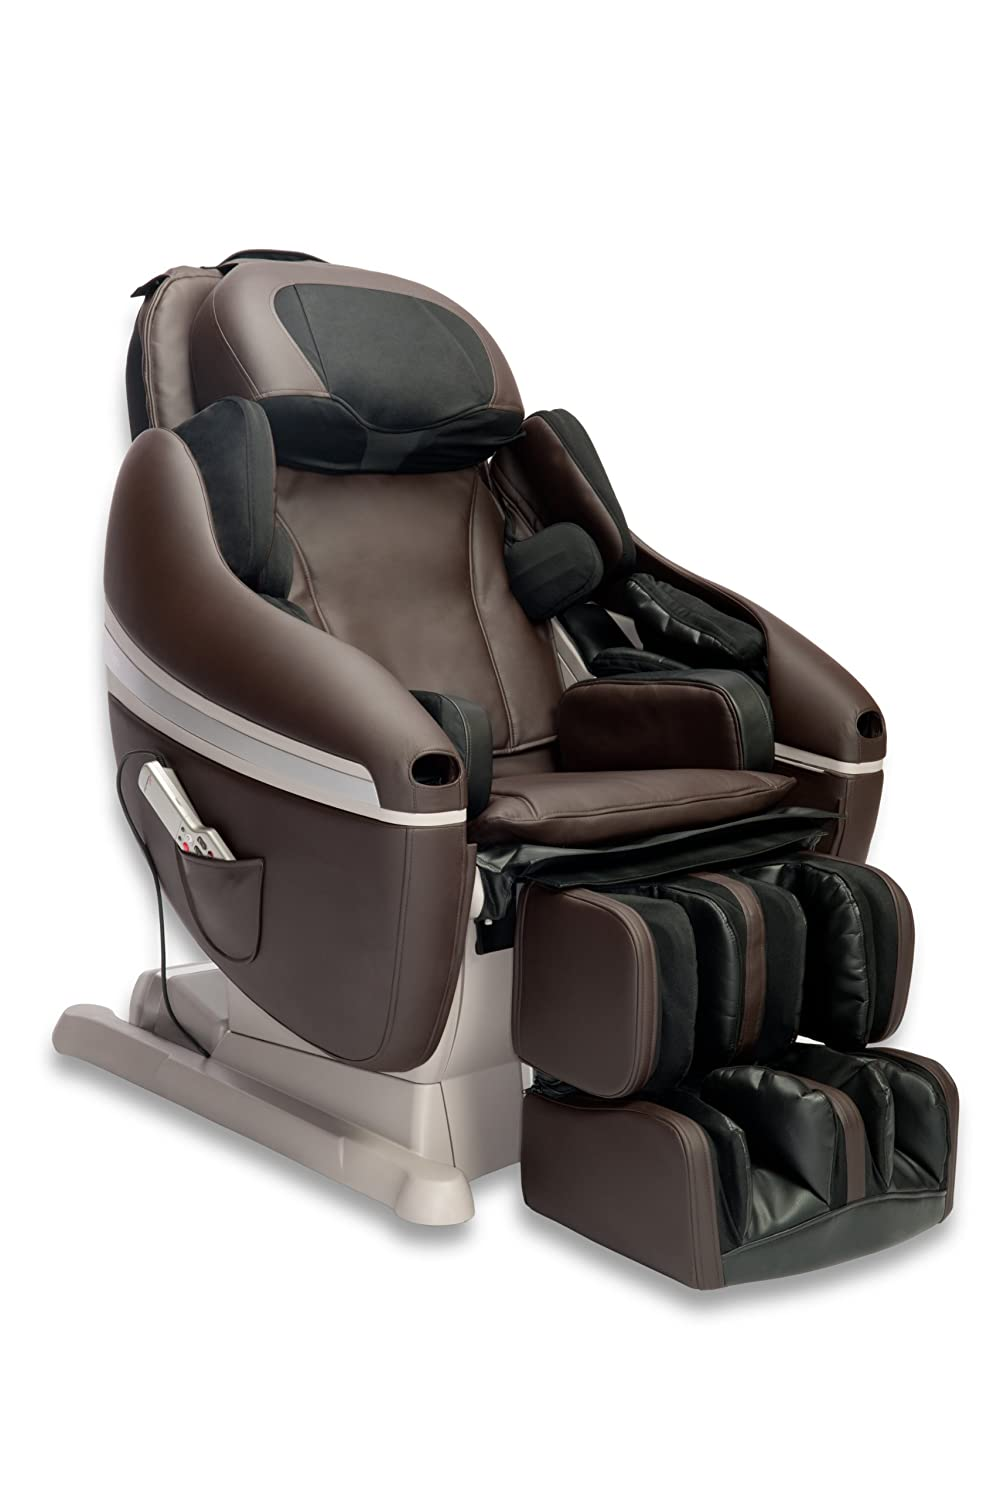 Top Advanced Massage Chair Brands